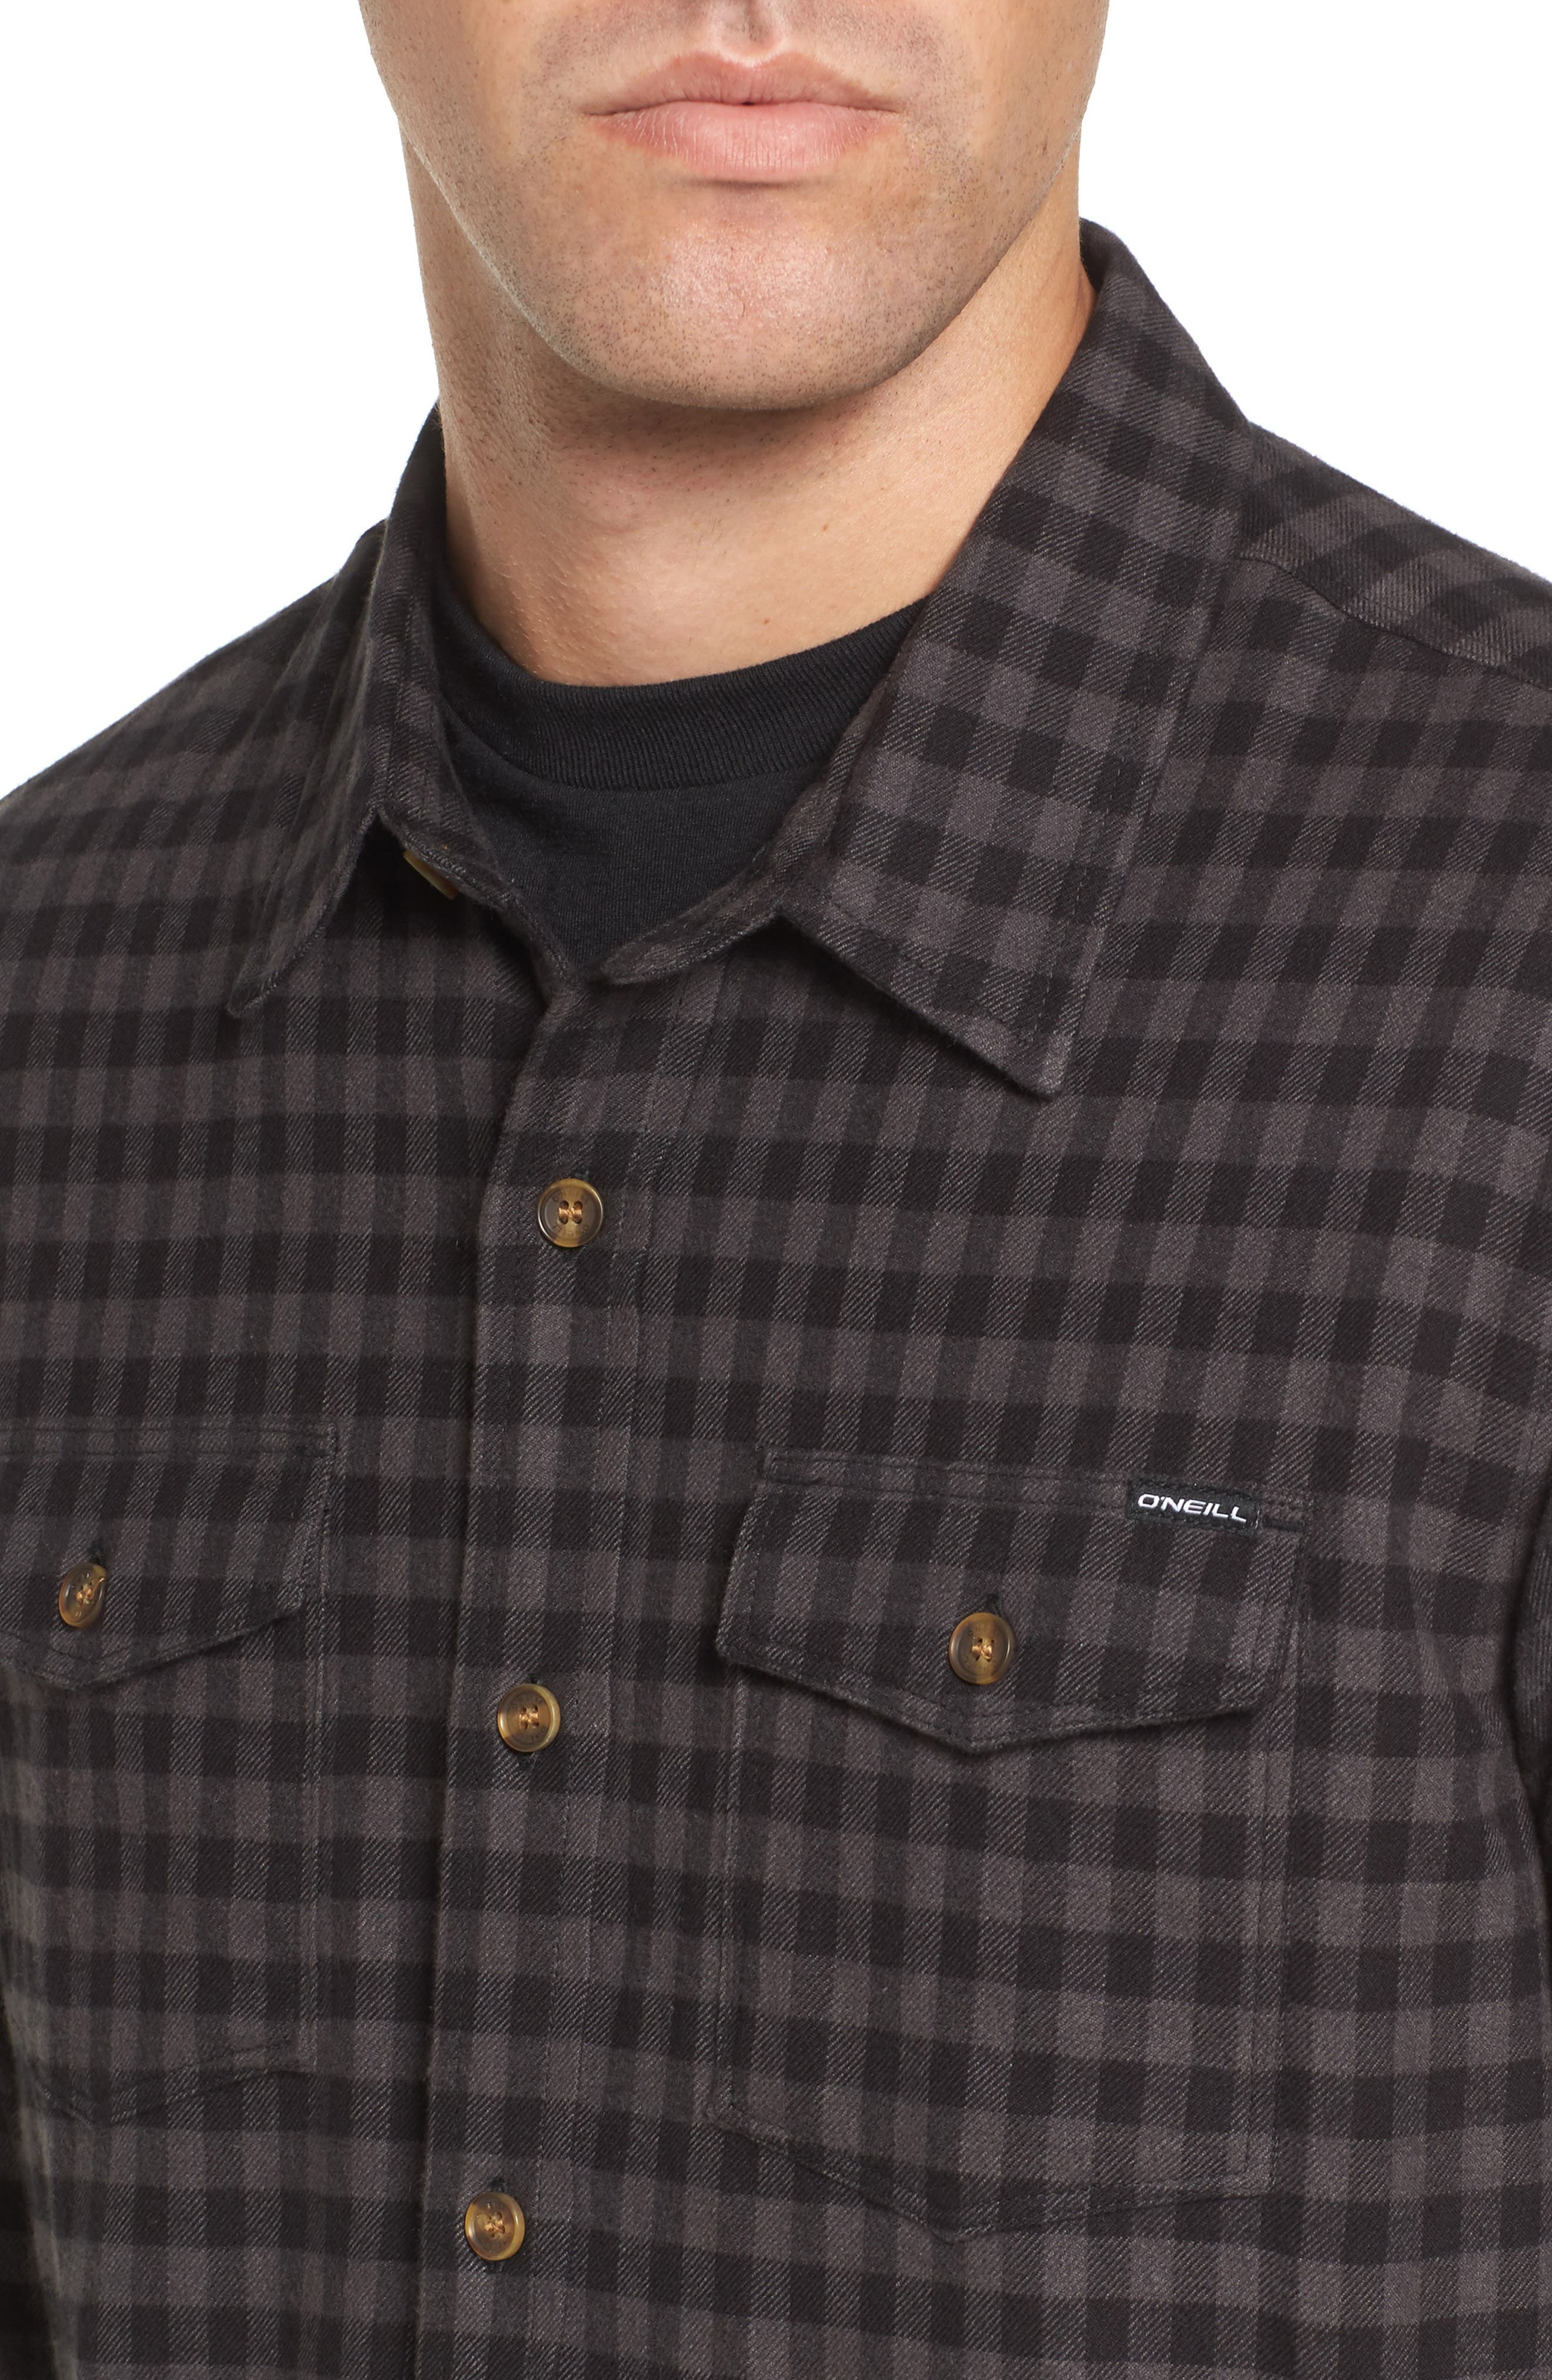 Gronk Lined Flannel Shirt,                             Alternate thumbnail 4, color,                             001